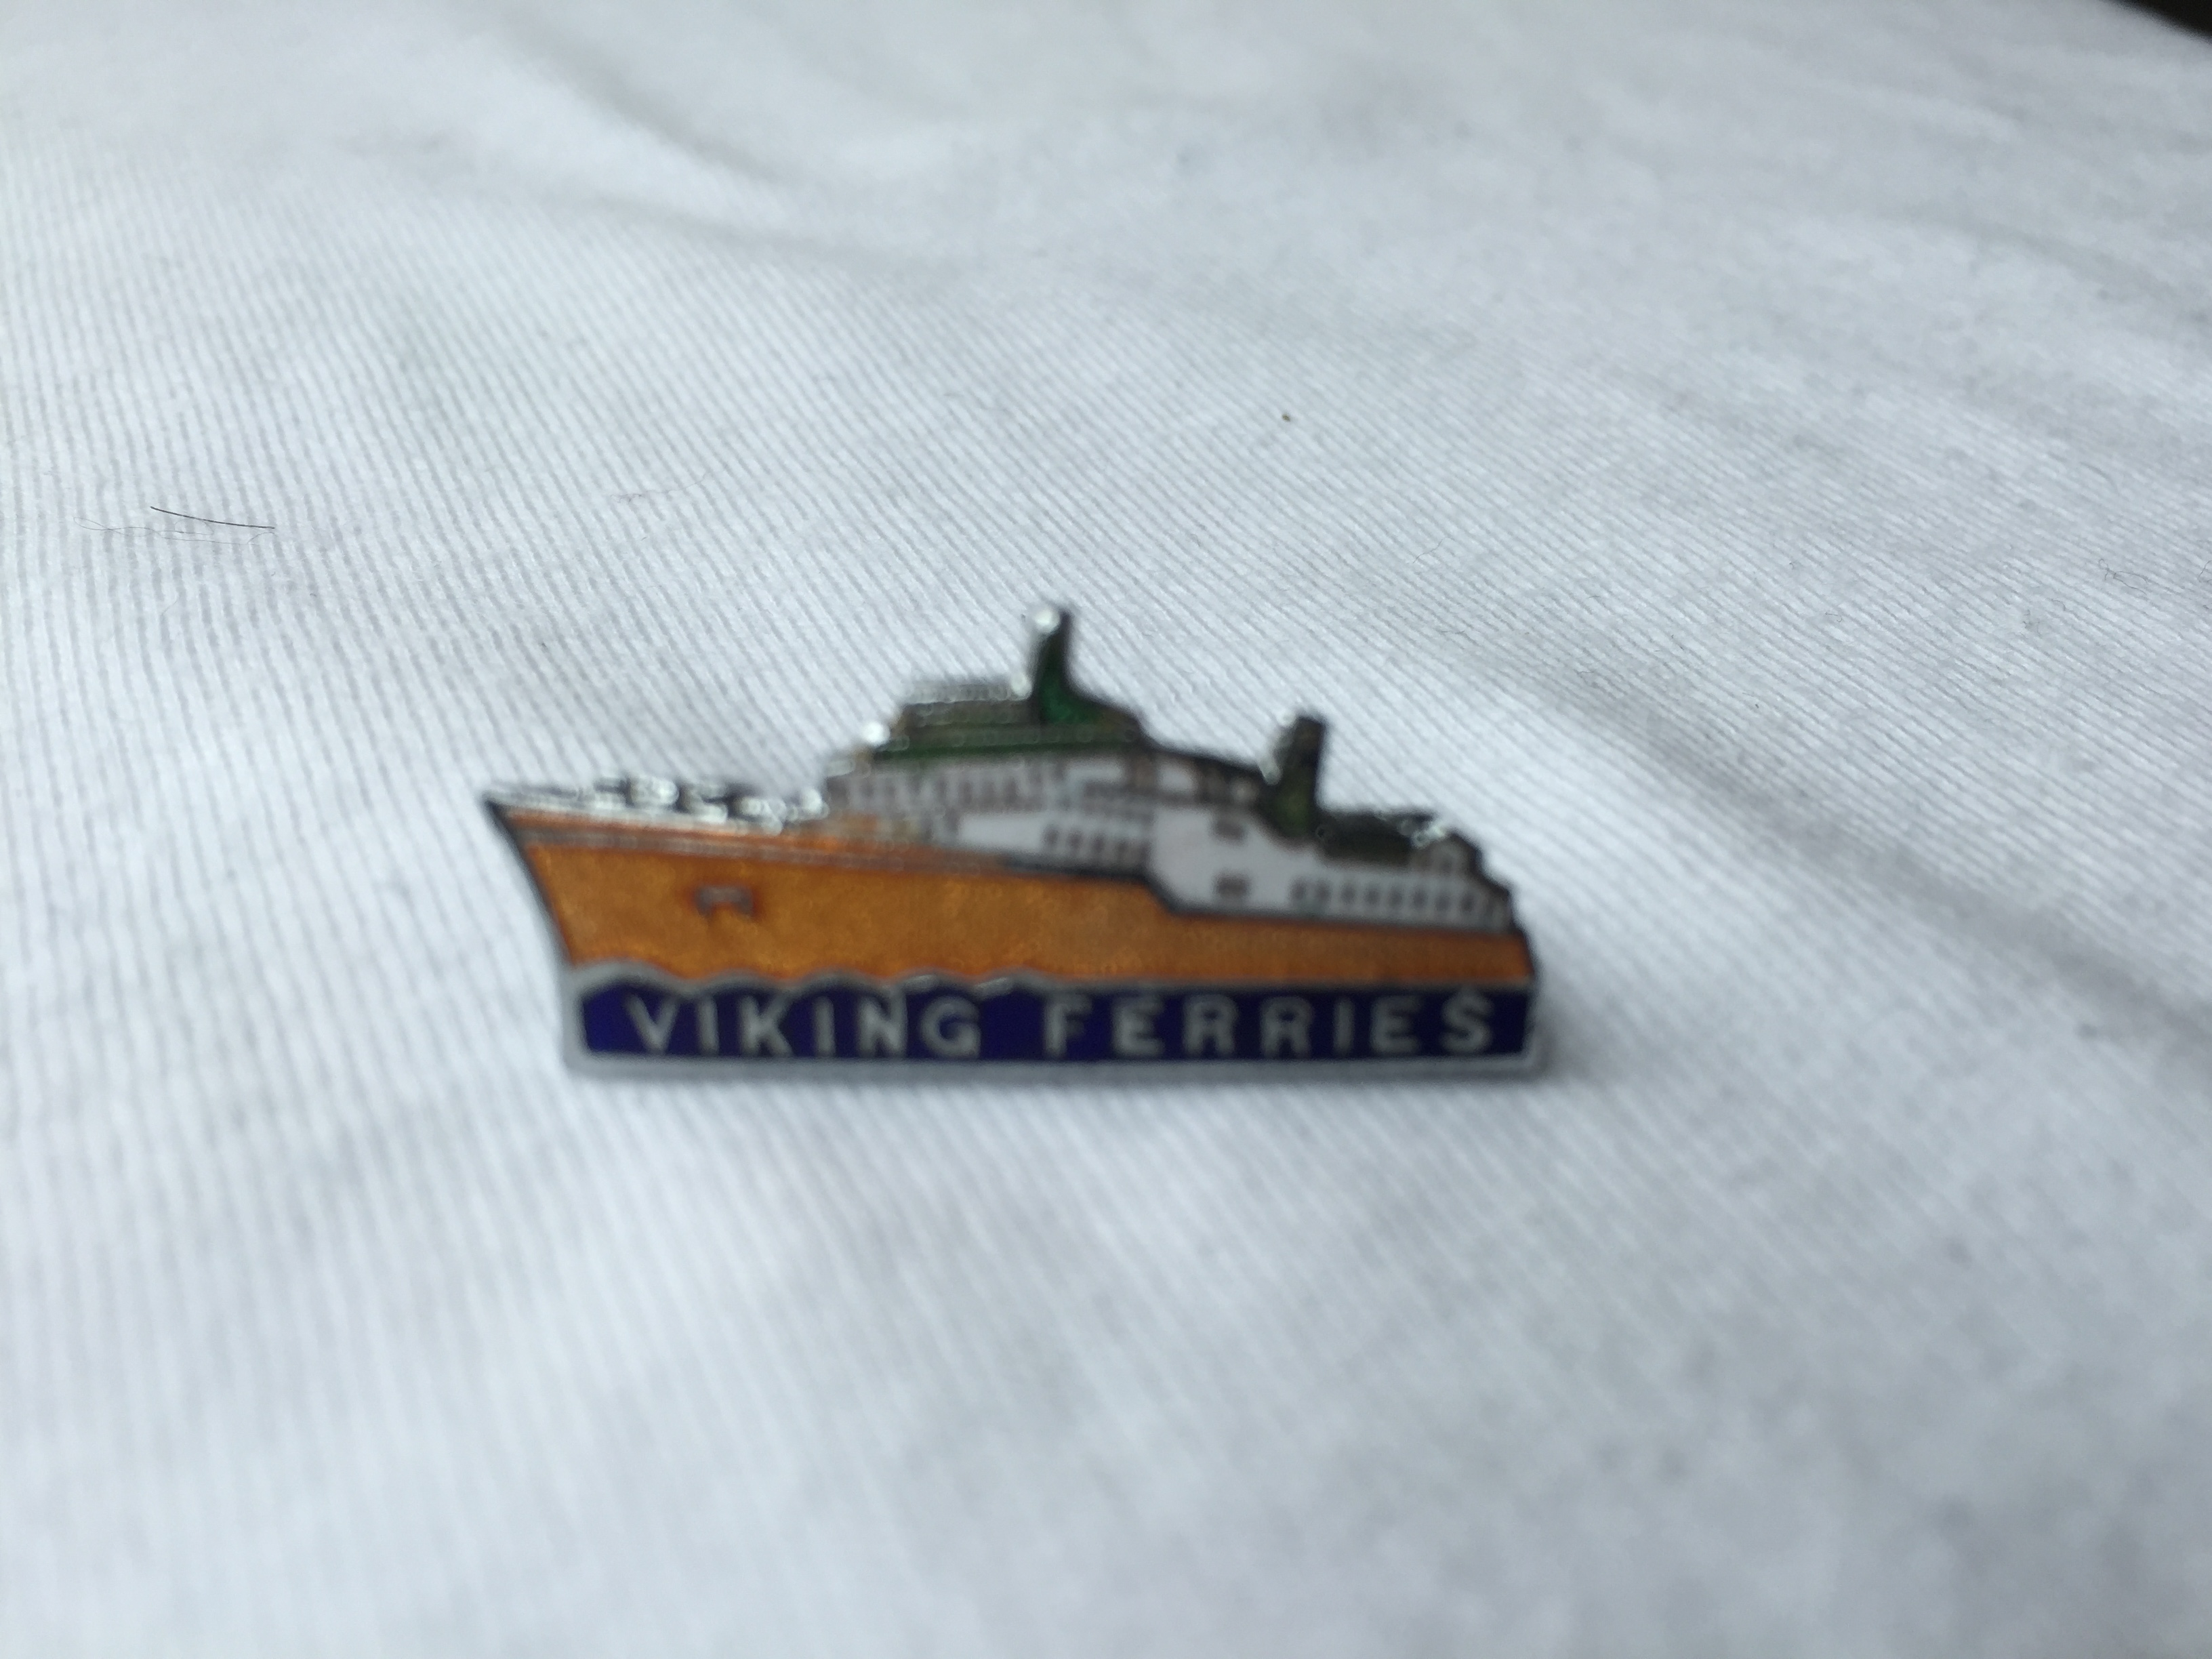 SHIP SHAPE LAPEL PIN FROM THE VIKING FERRY CROSSING COMPANY